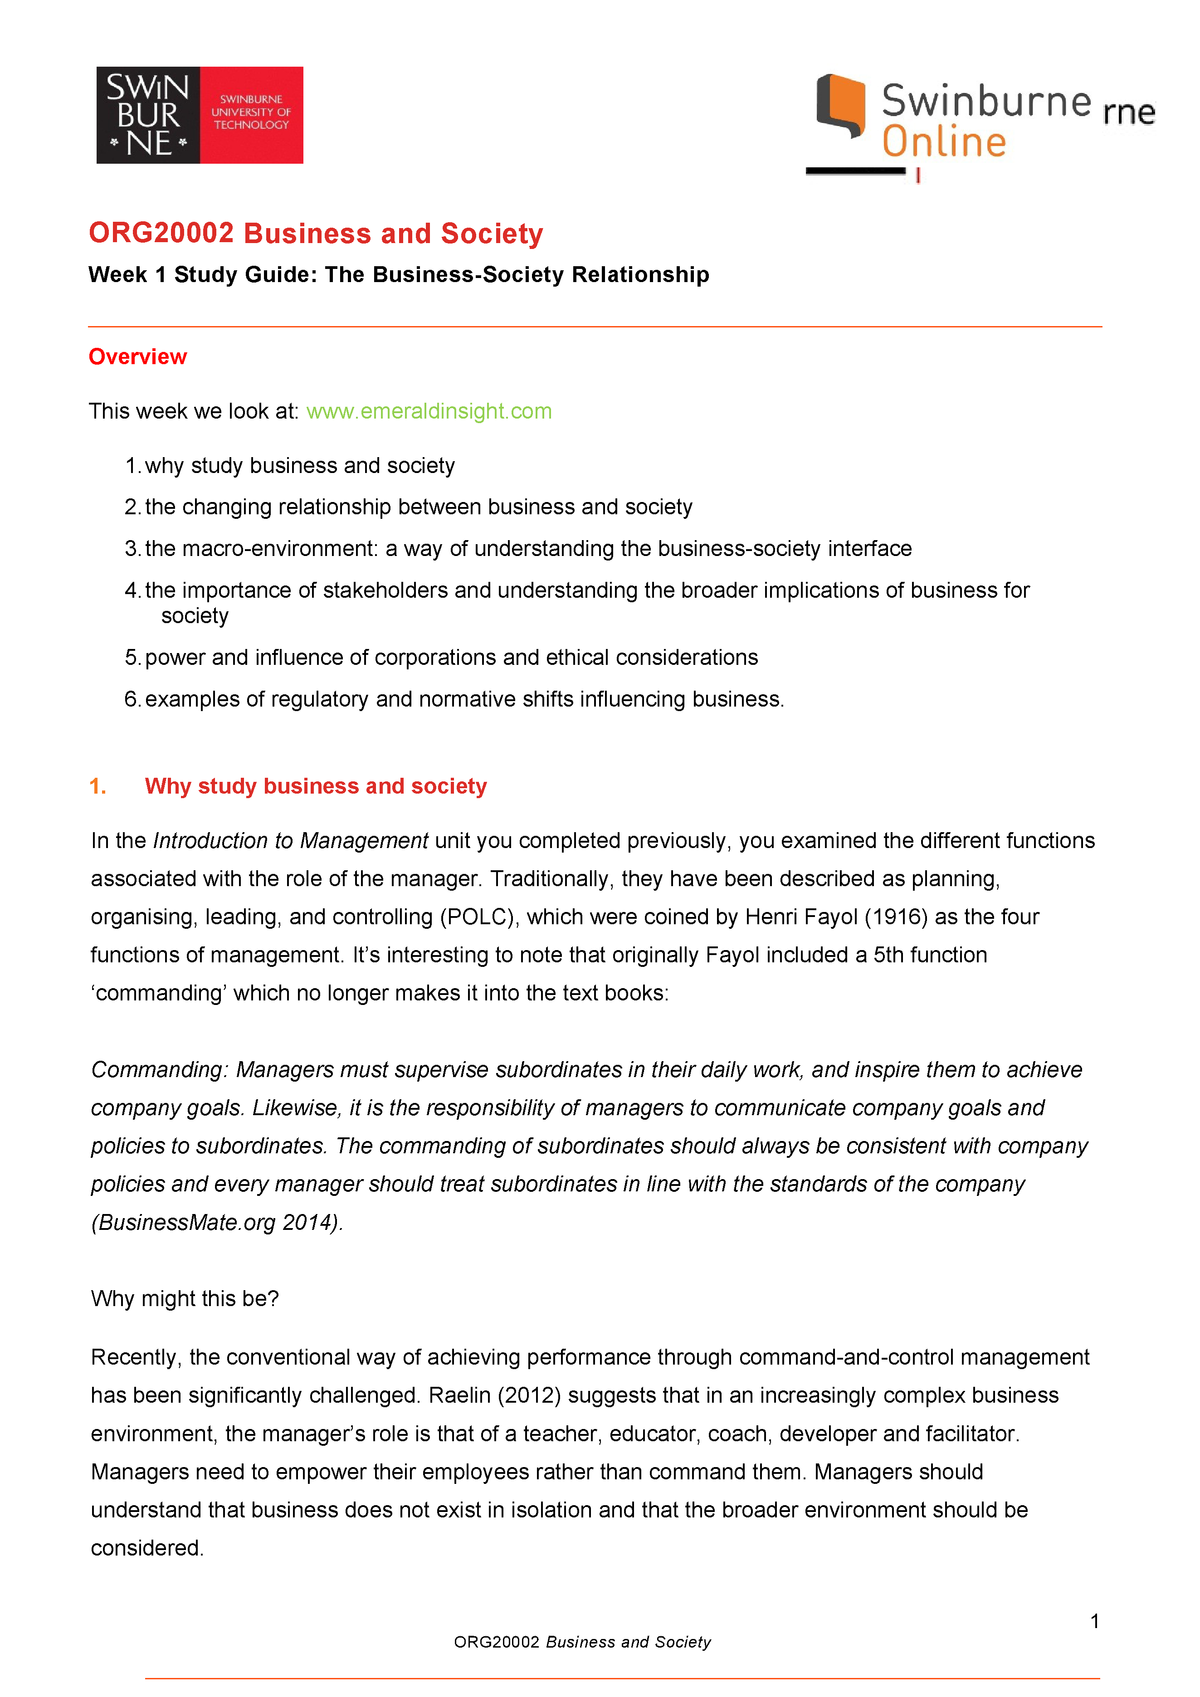 Week 1 Study Guide The Business-Society Relationship - StuDocu